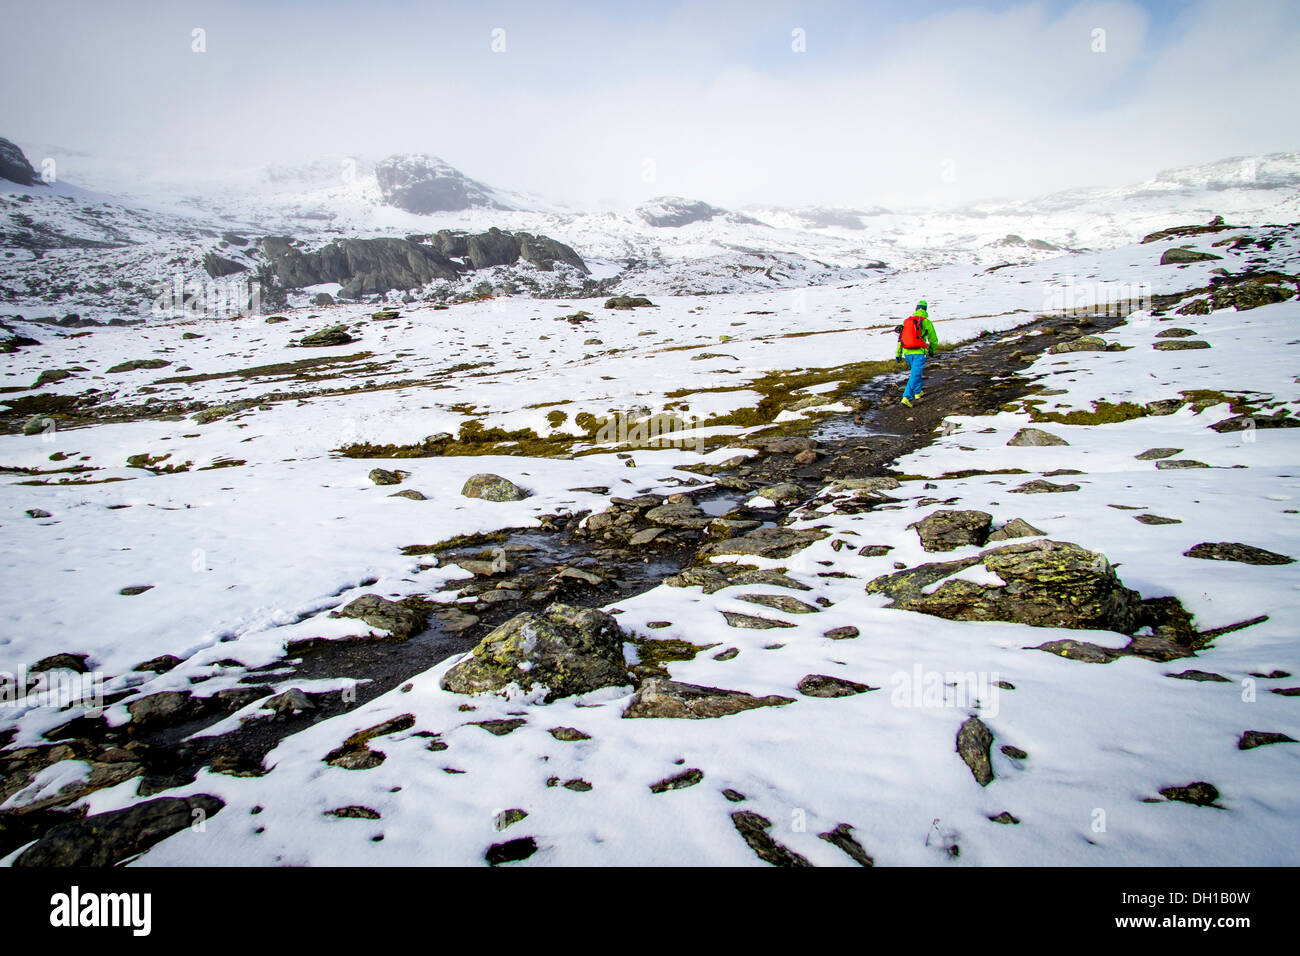 Man speed hiking along snowcapped terrain, Norway, Europe - Stock Image